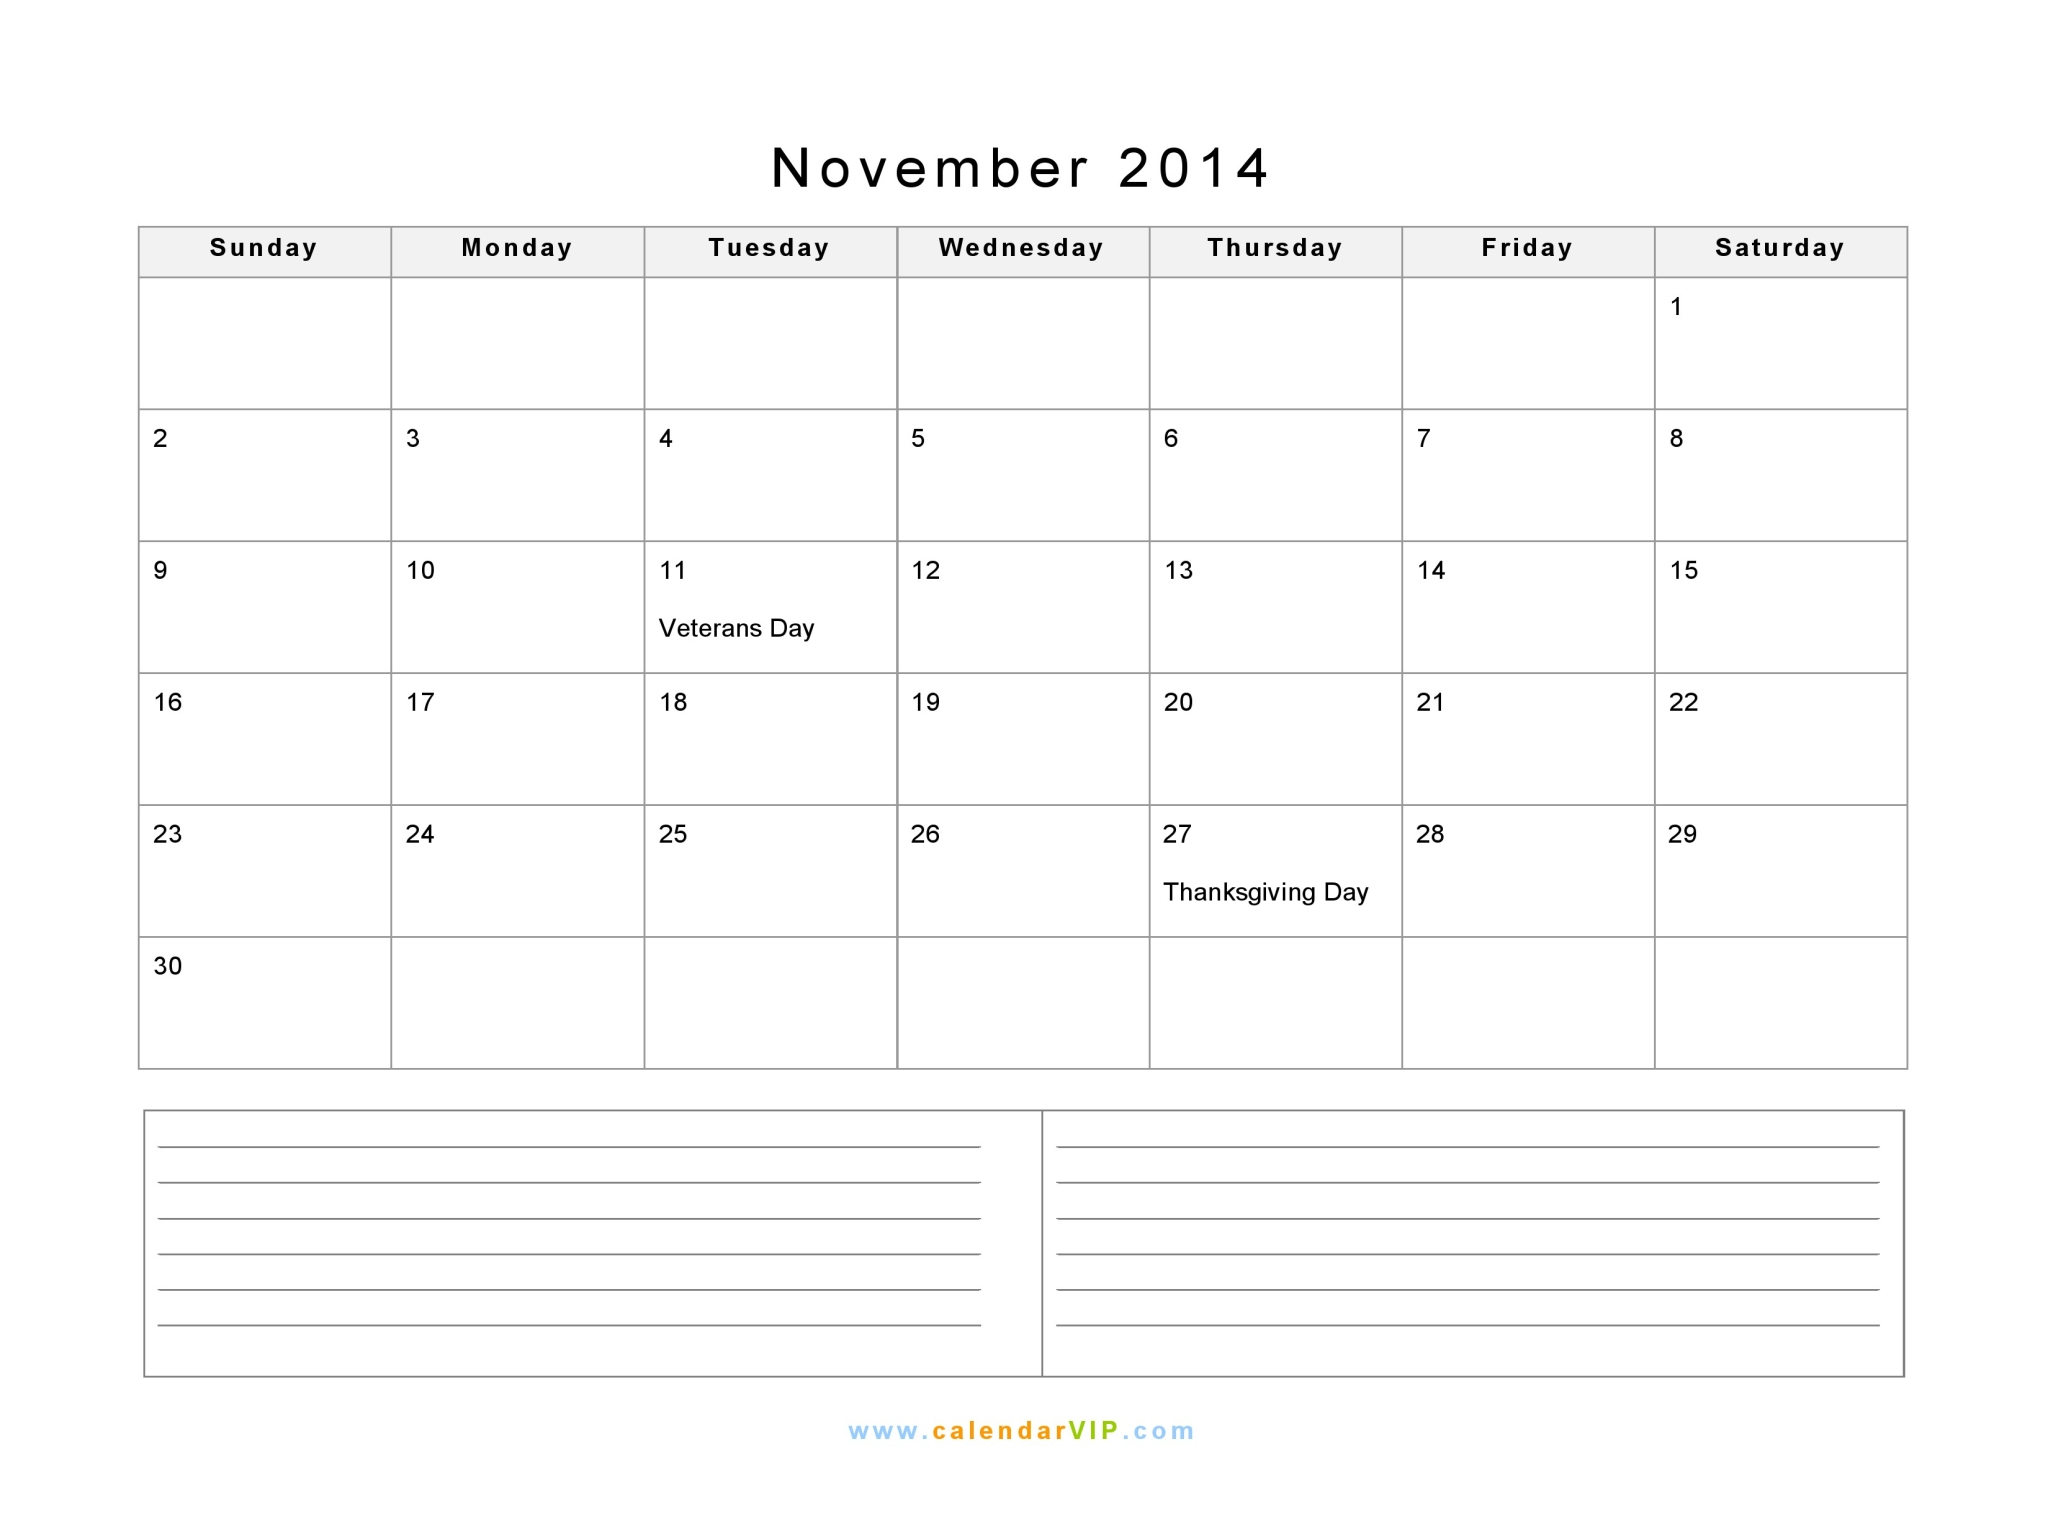 November 2014 Calendar Blank Printable Calendar Template In Pdf